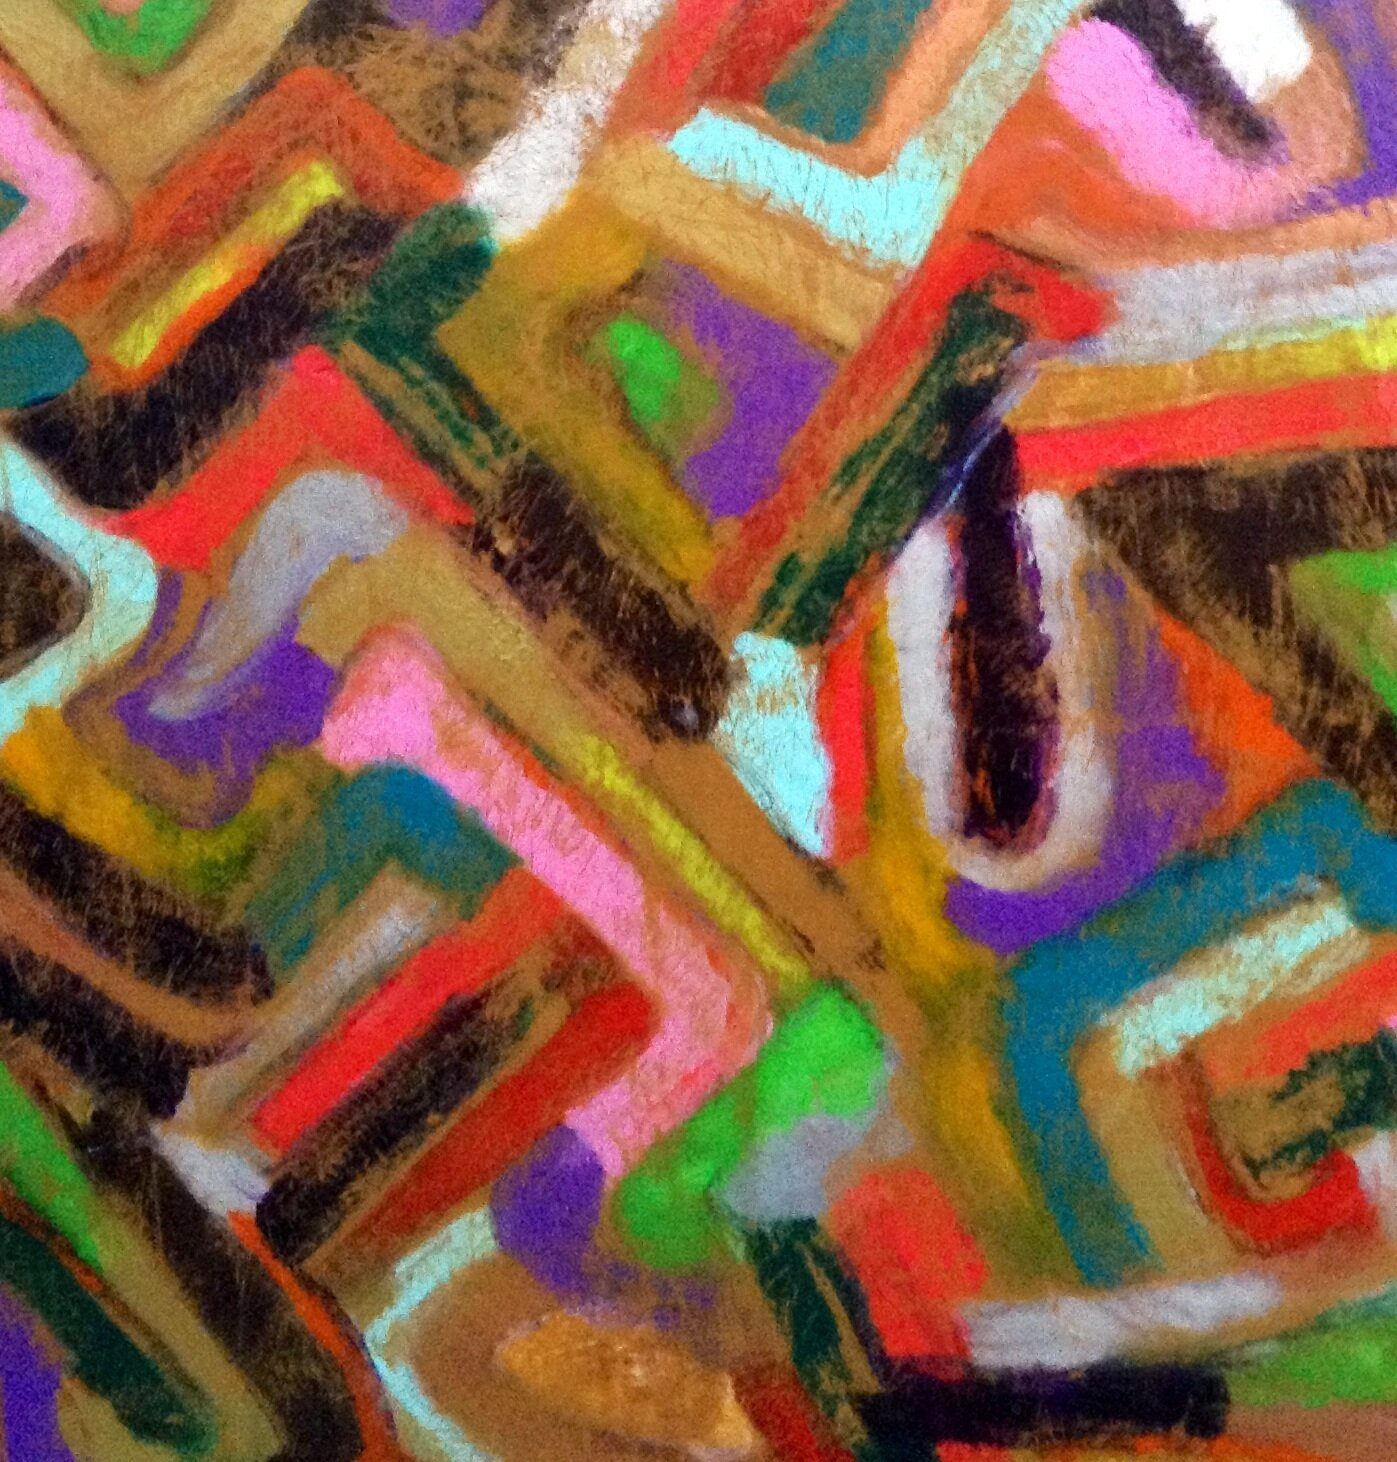 Abstraction 4 - 100X100